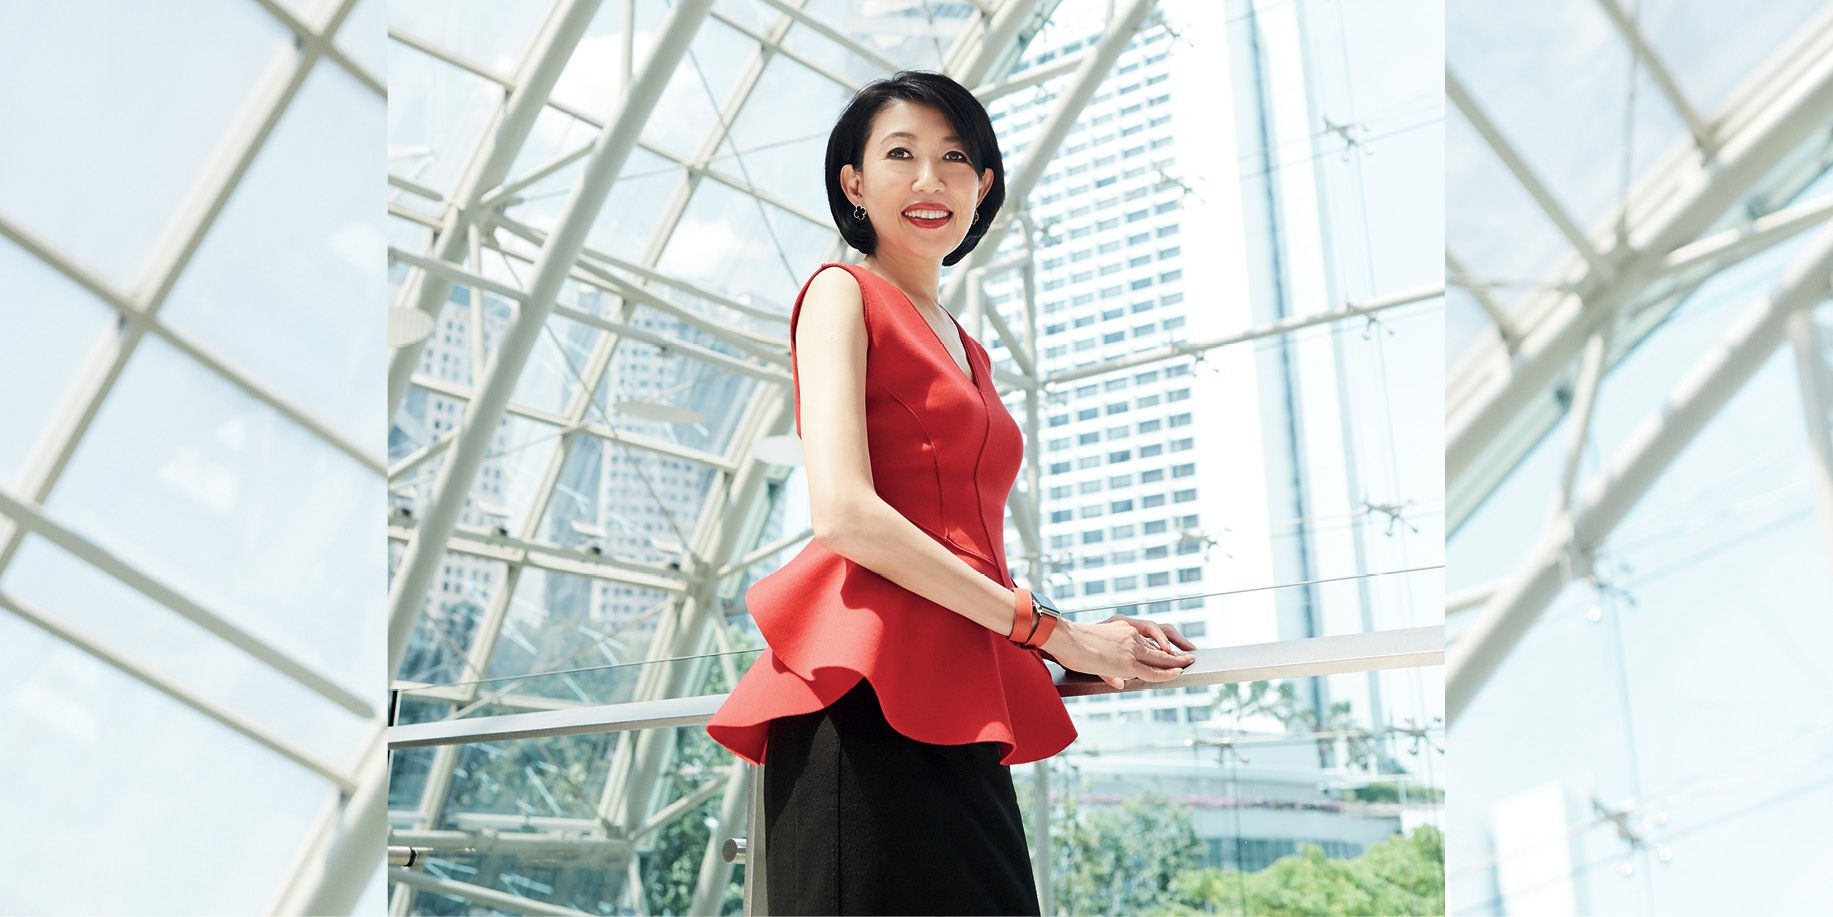 DP Architects' Angelene Chan Shares Her Secrets To Being A Successful Leader